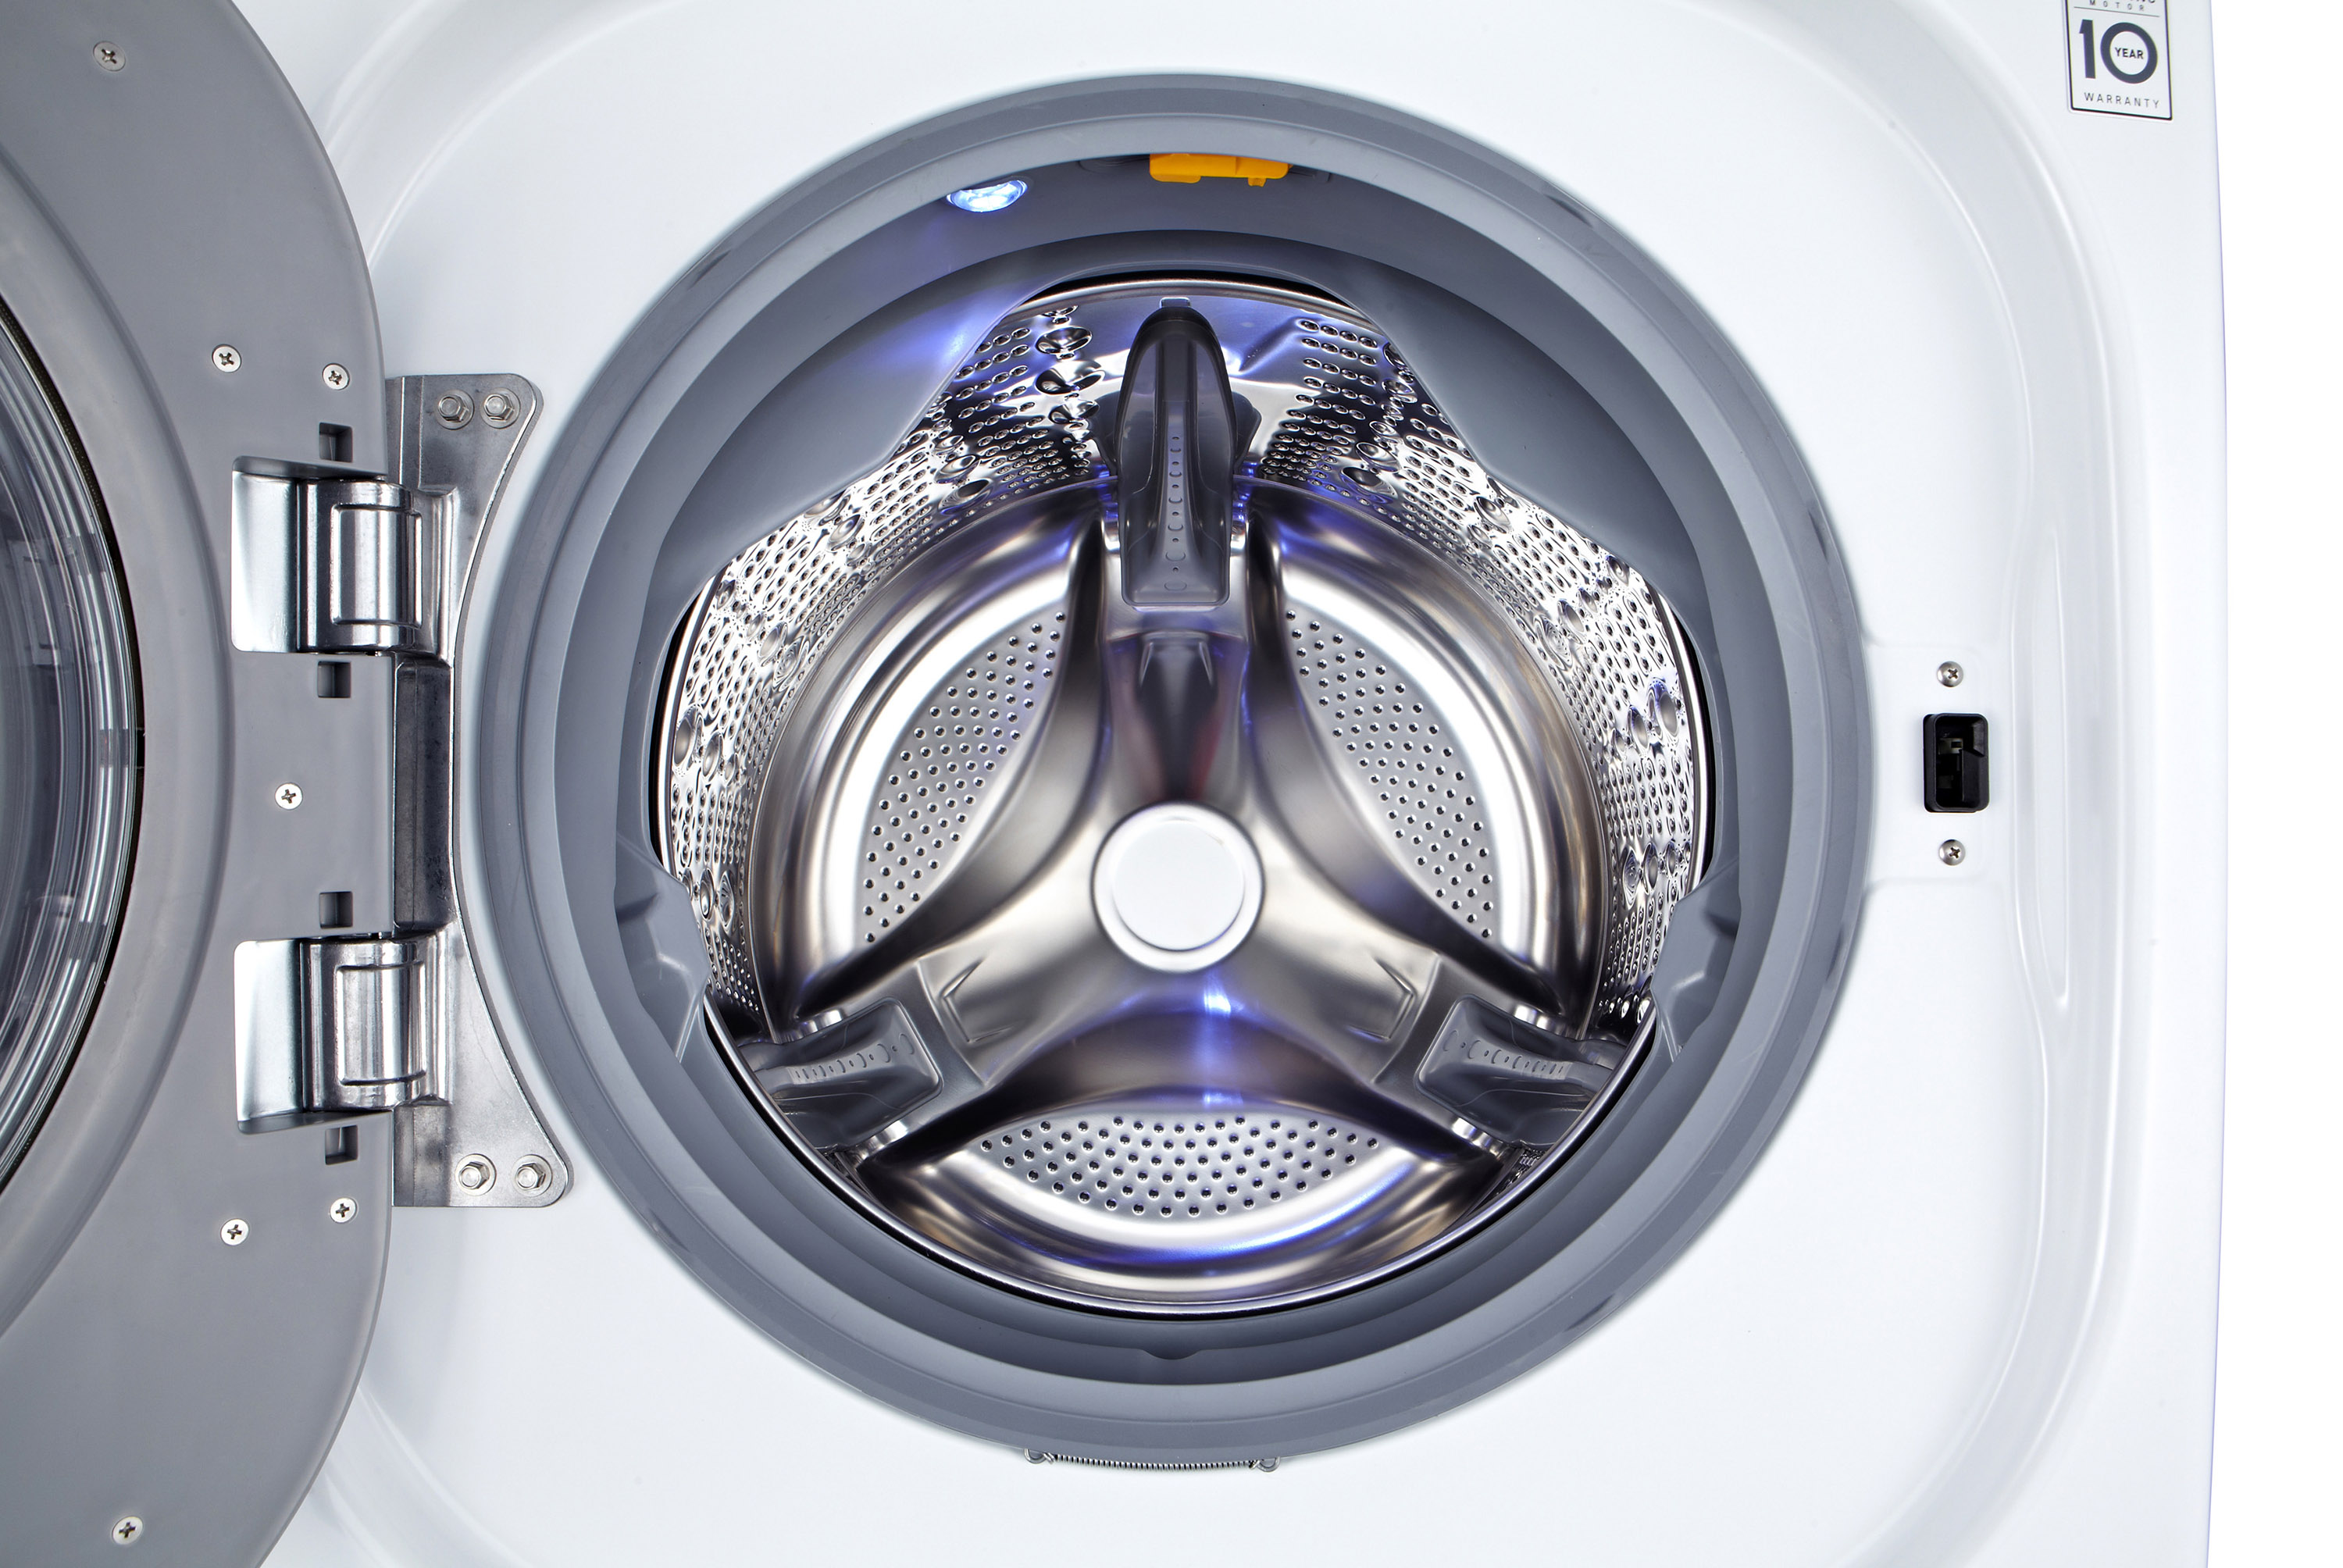 LG All in One Washer Dryer Combo, LG WM3477HW - Appliances ...